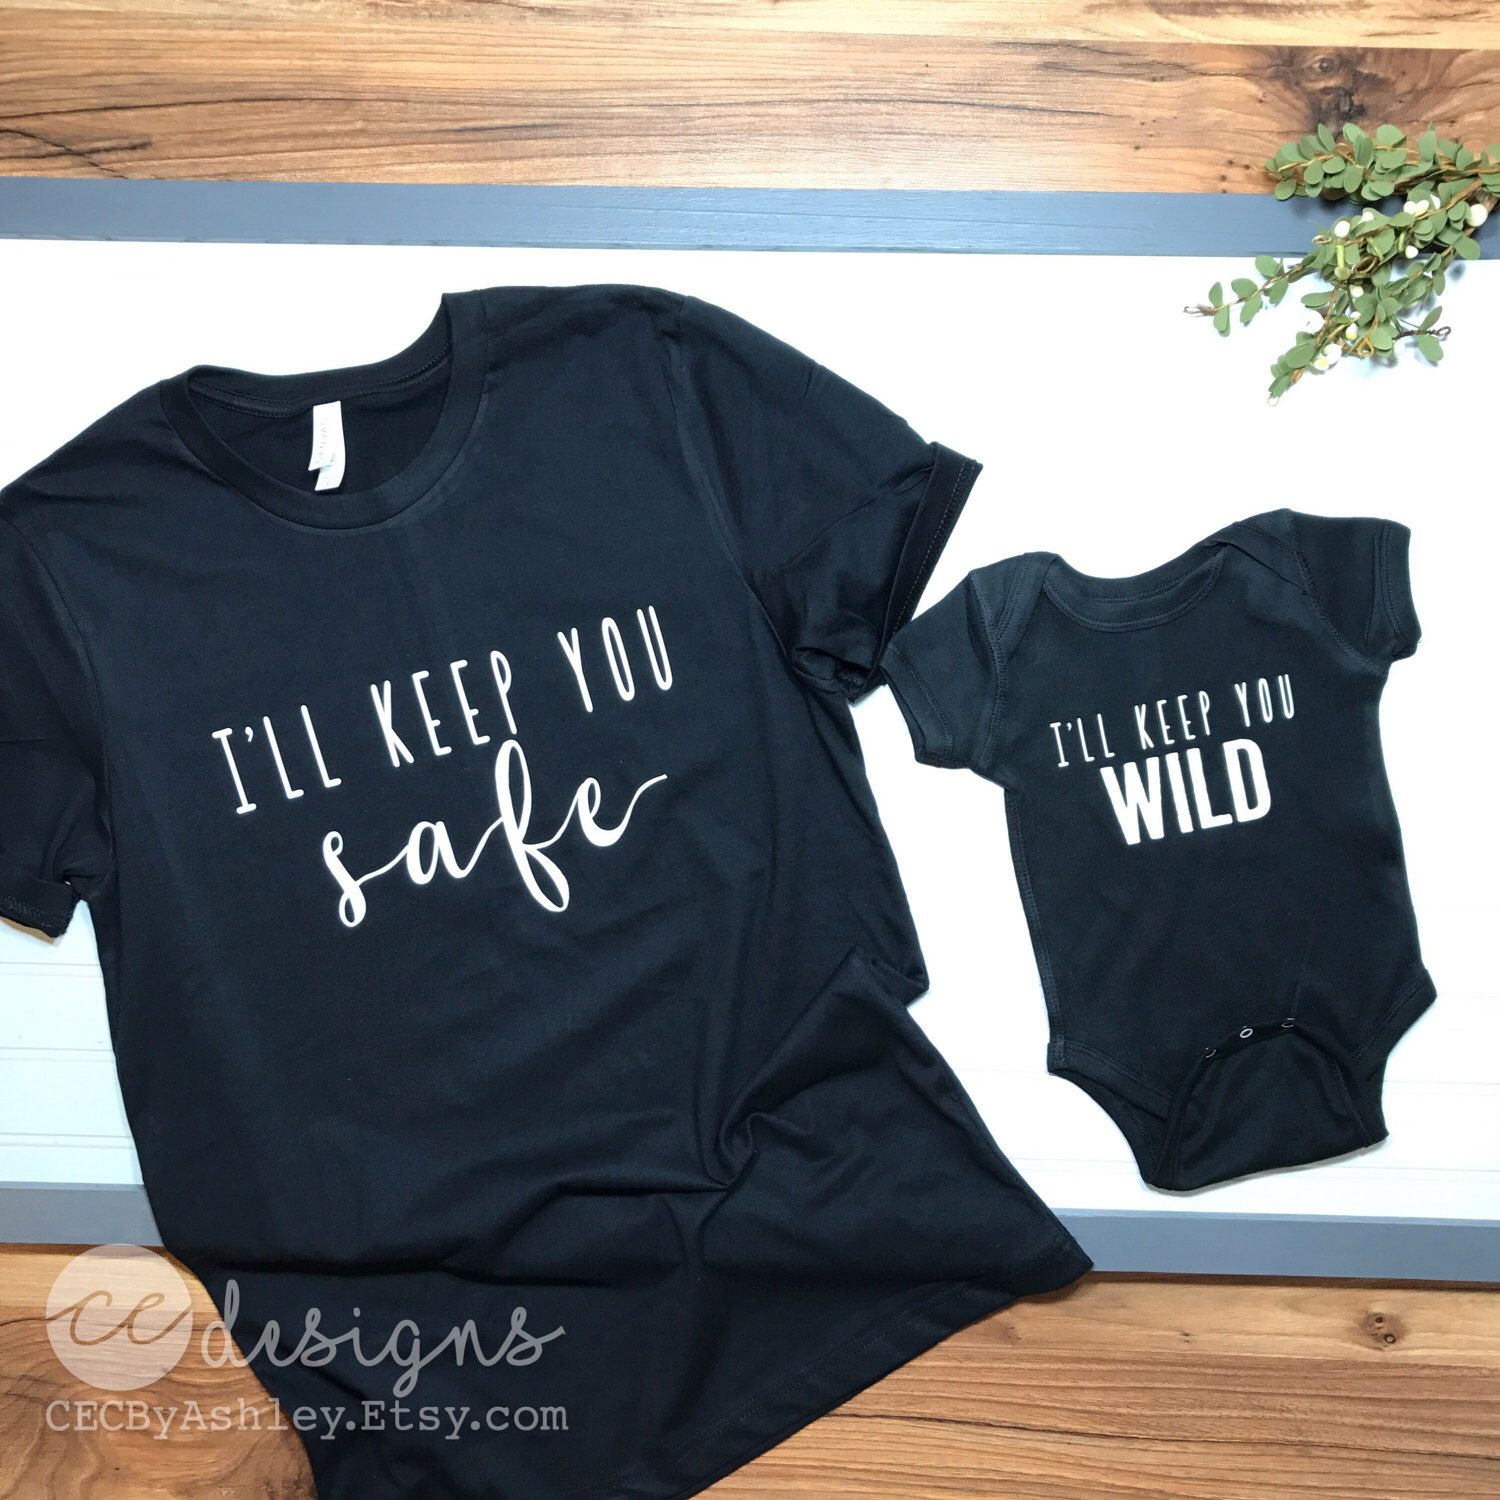 A personal favorite from my Etsy shop https://www.etsy.com/listing/479518674/mommy-and-me-mom-and-son-shirt-set-of-2